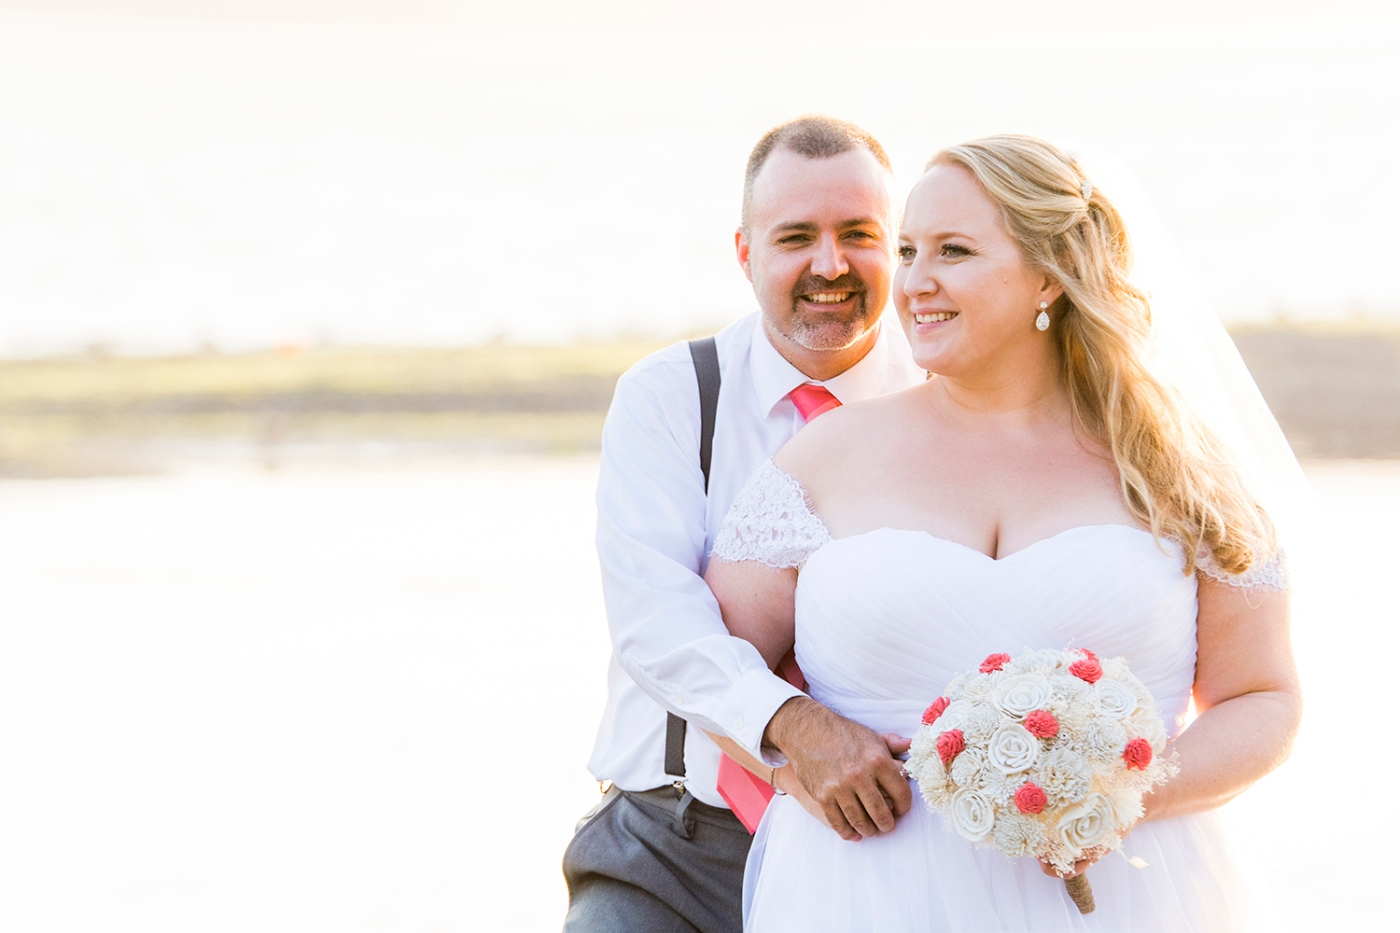 Jane_Speleers_Photography_Seattle_Wedding_waterfront_NW_JS7_9501